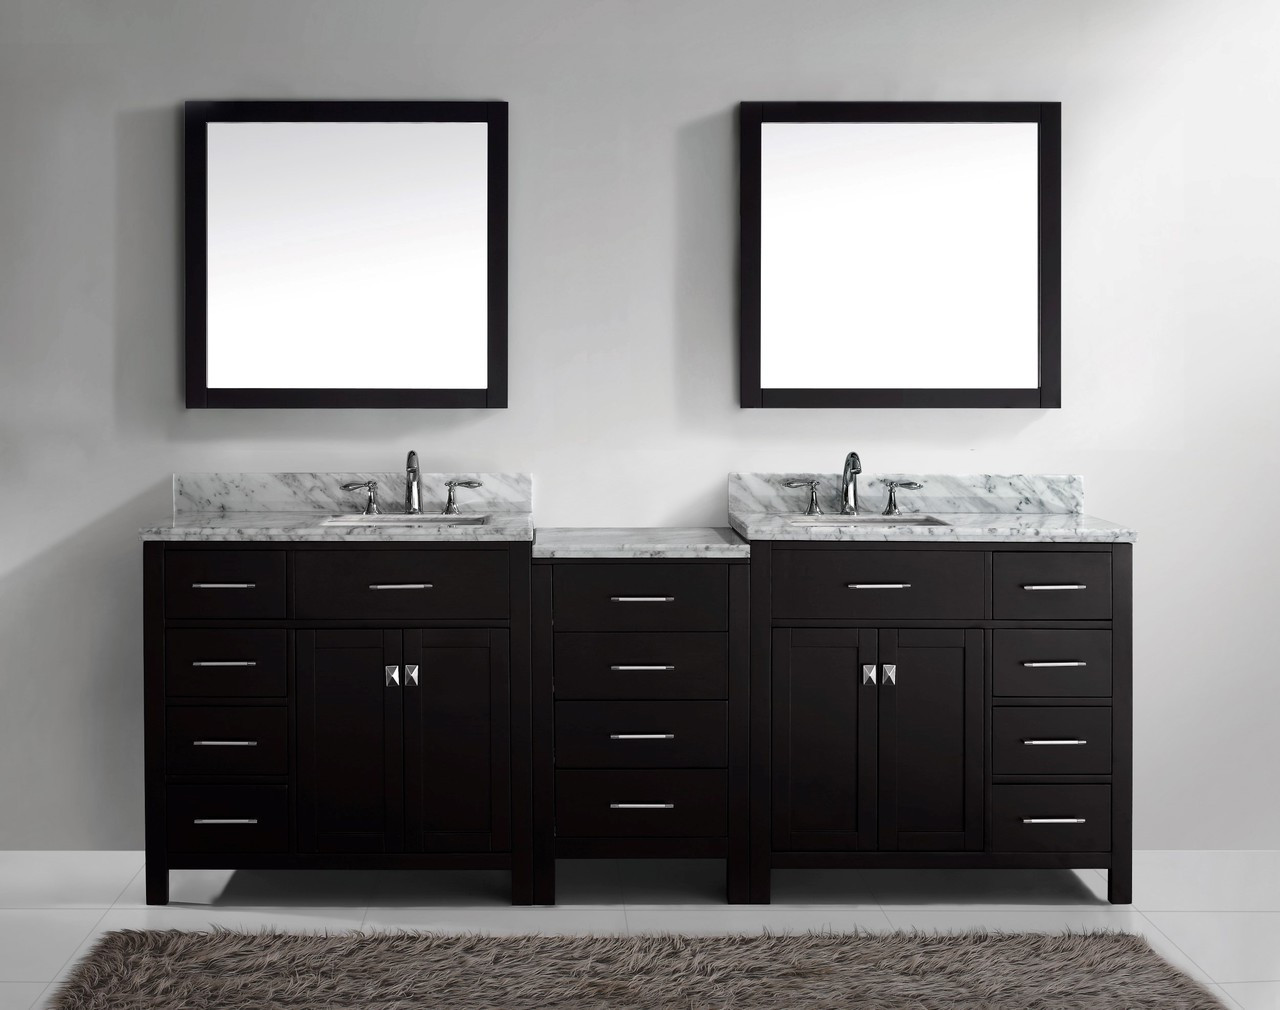 "Virtu USA Caroline Parkway 93"" Double Bathroom Vanity Cabinet Set in Espresso w/ Italian Carrara White Marble Counter-Top"